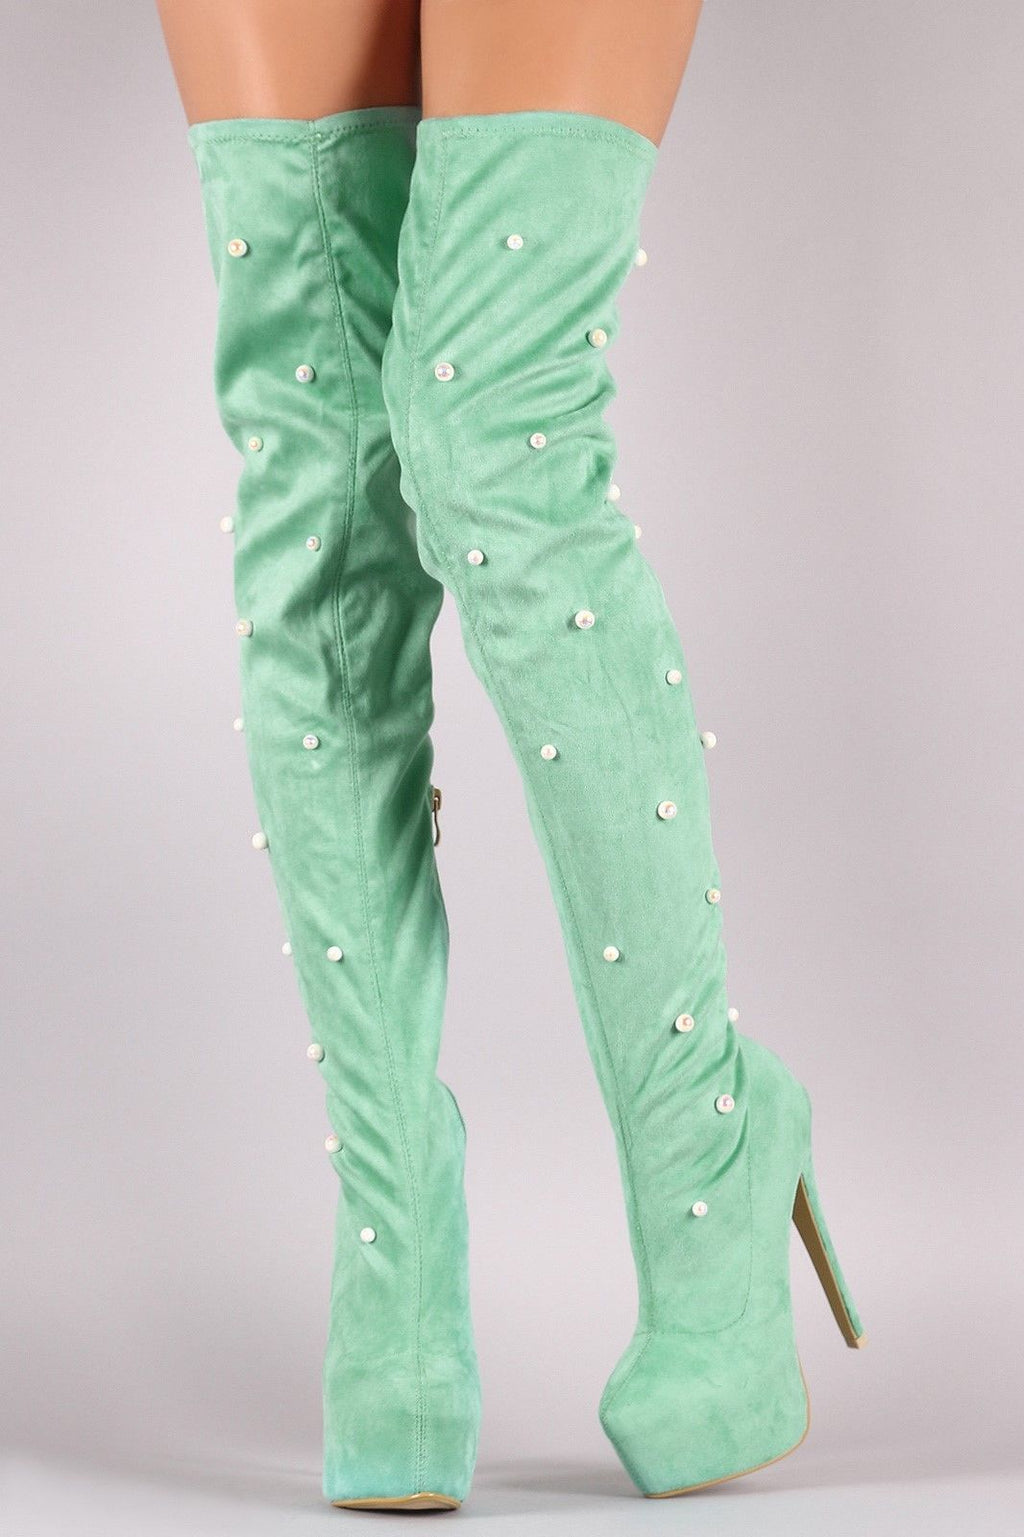 TS Soft Mint Green Pearl Detail Platform Thigh High Heel Boots 6.5-11